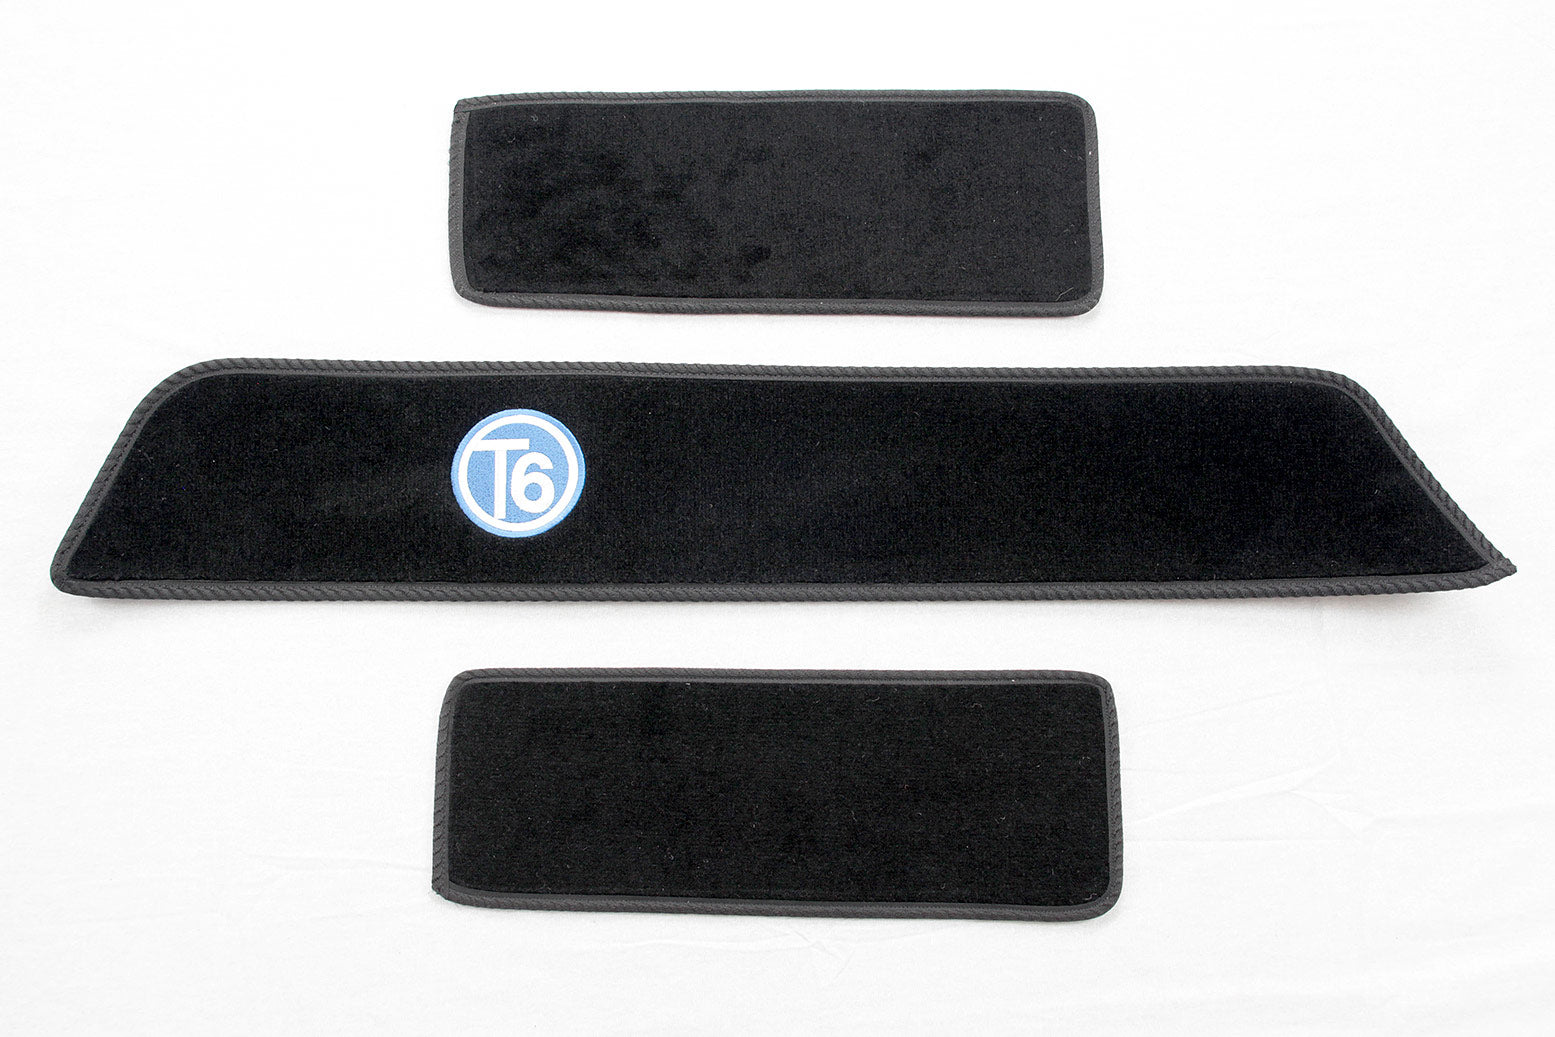 T6 side step mat set with blue T6 logo